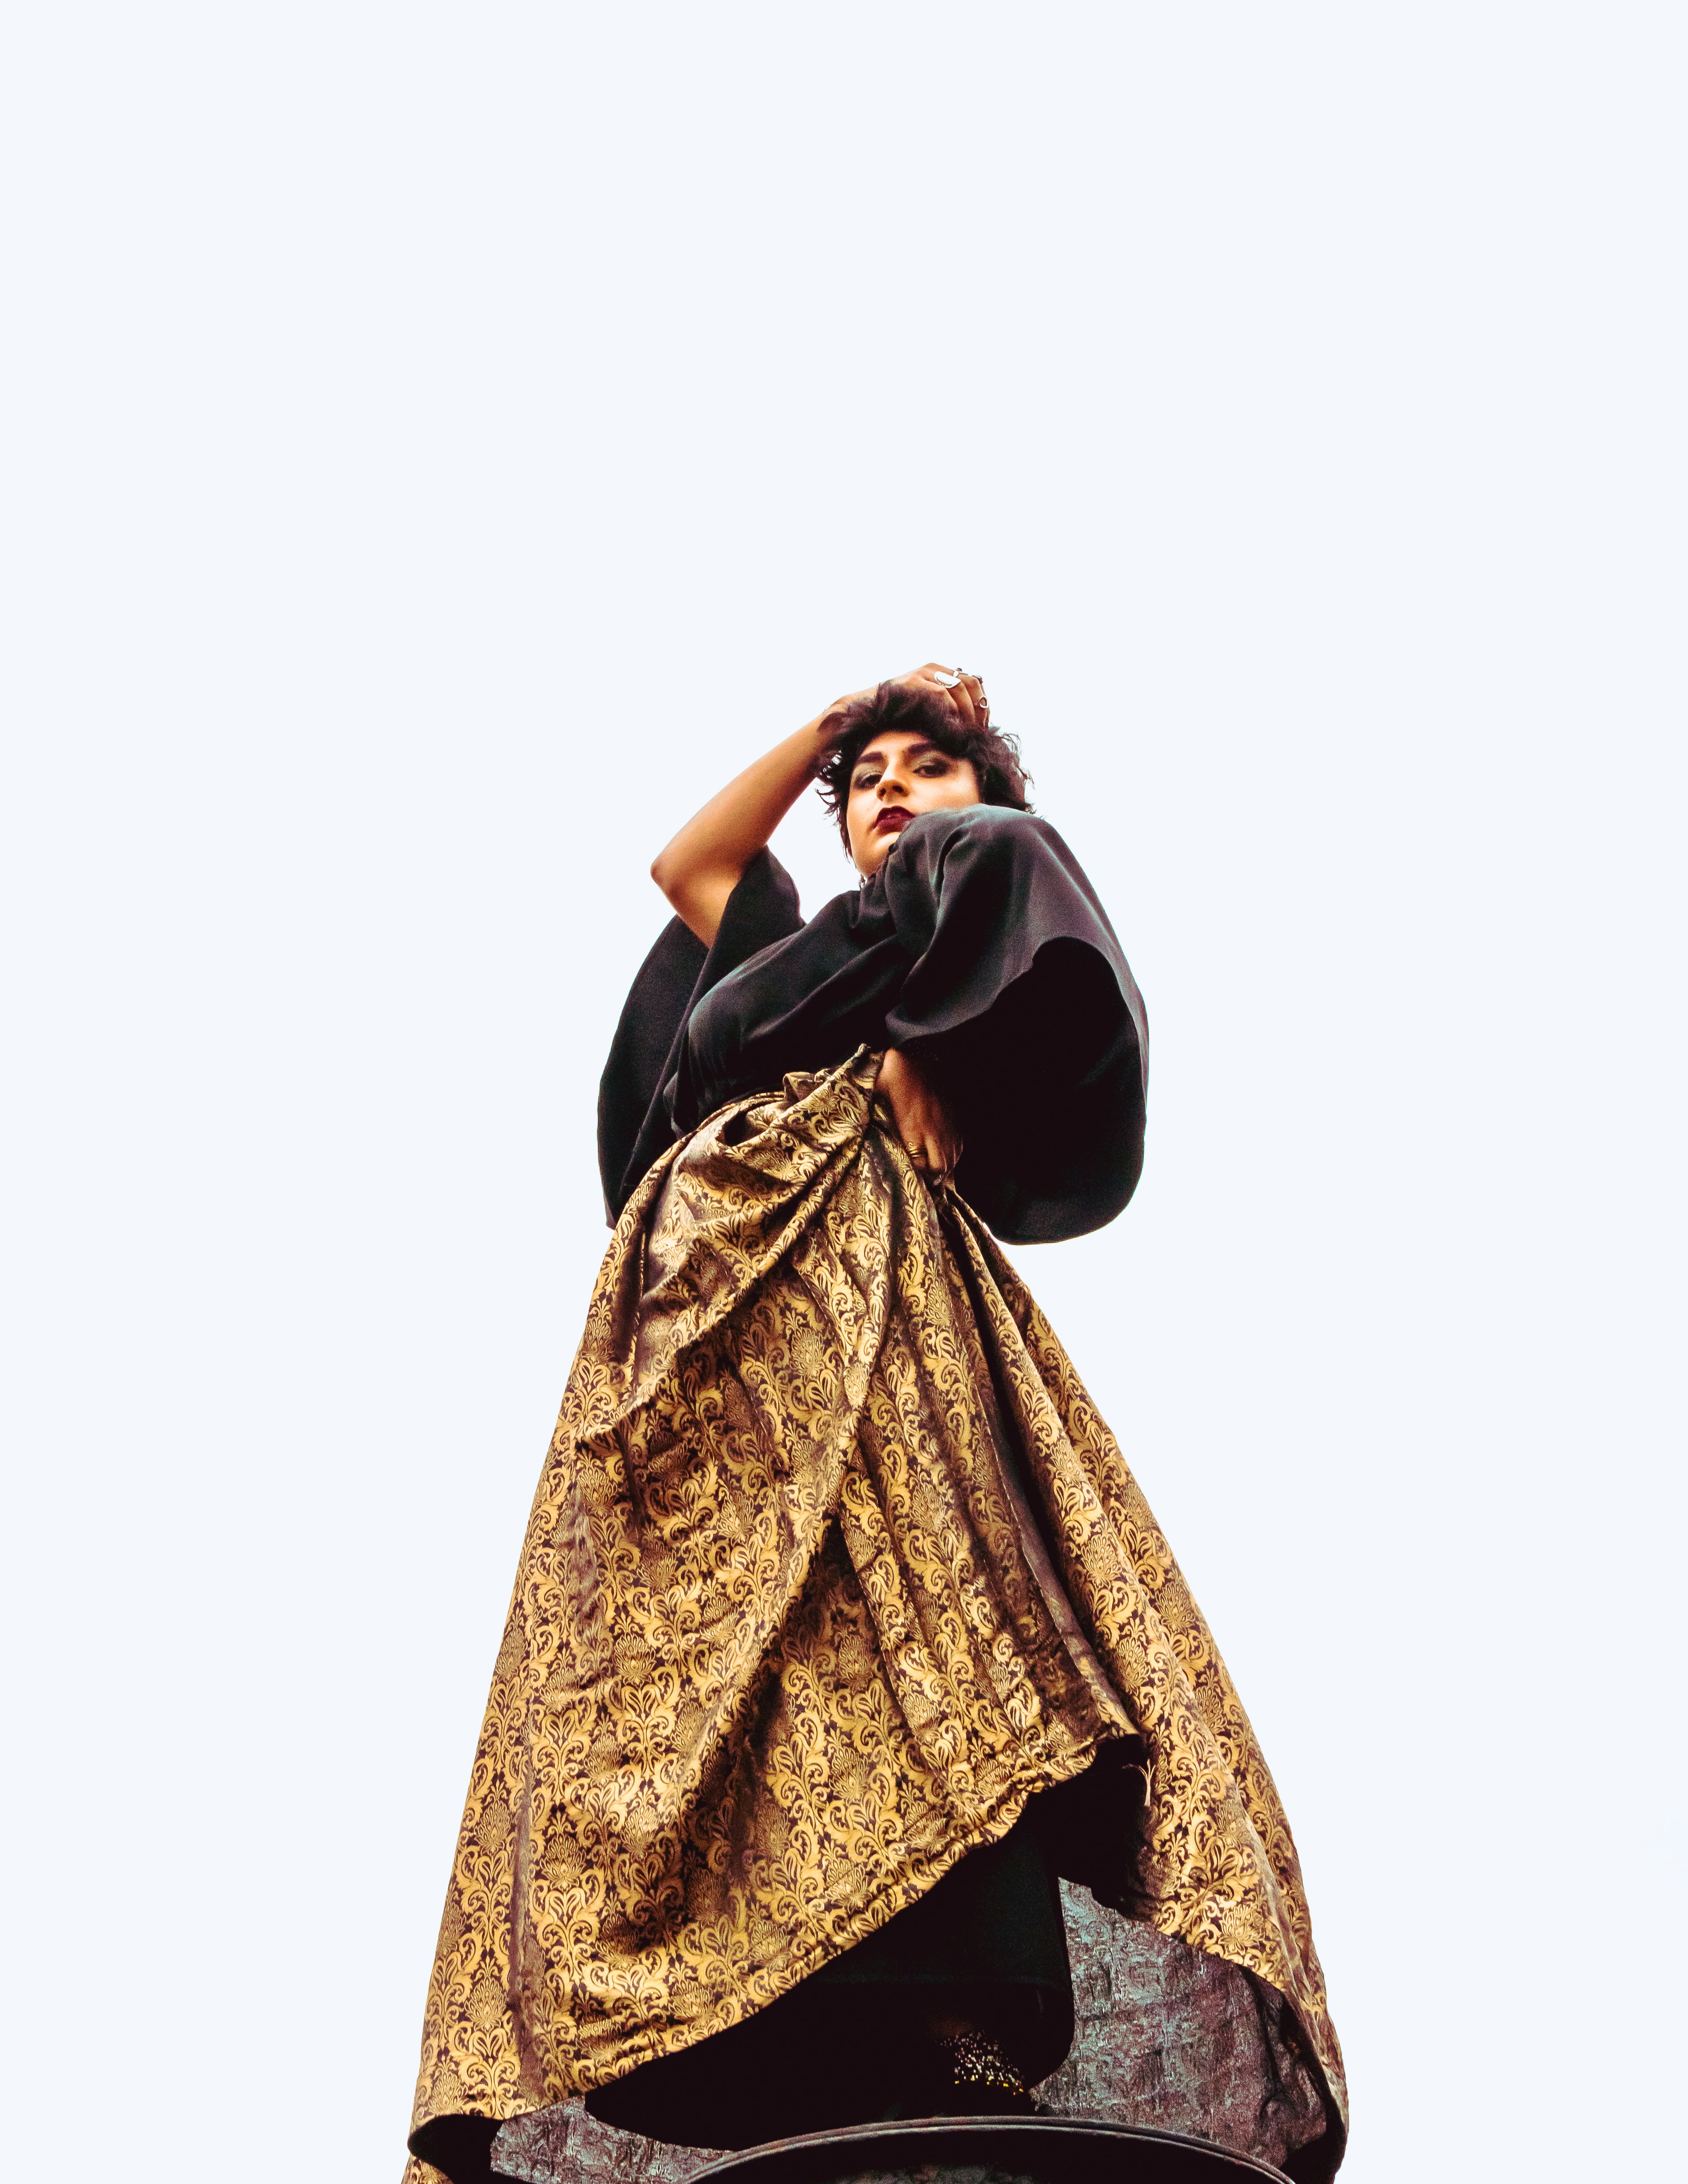 low-angle photography of woman standing wearing brown and black maxi dress